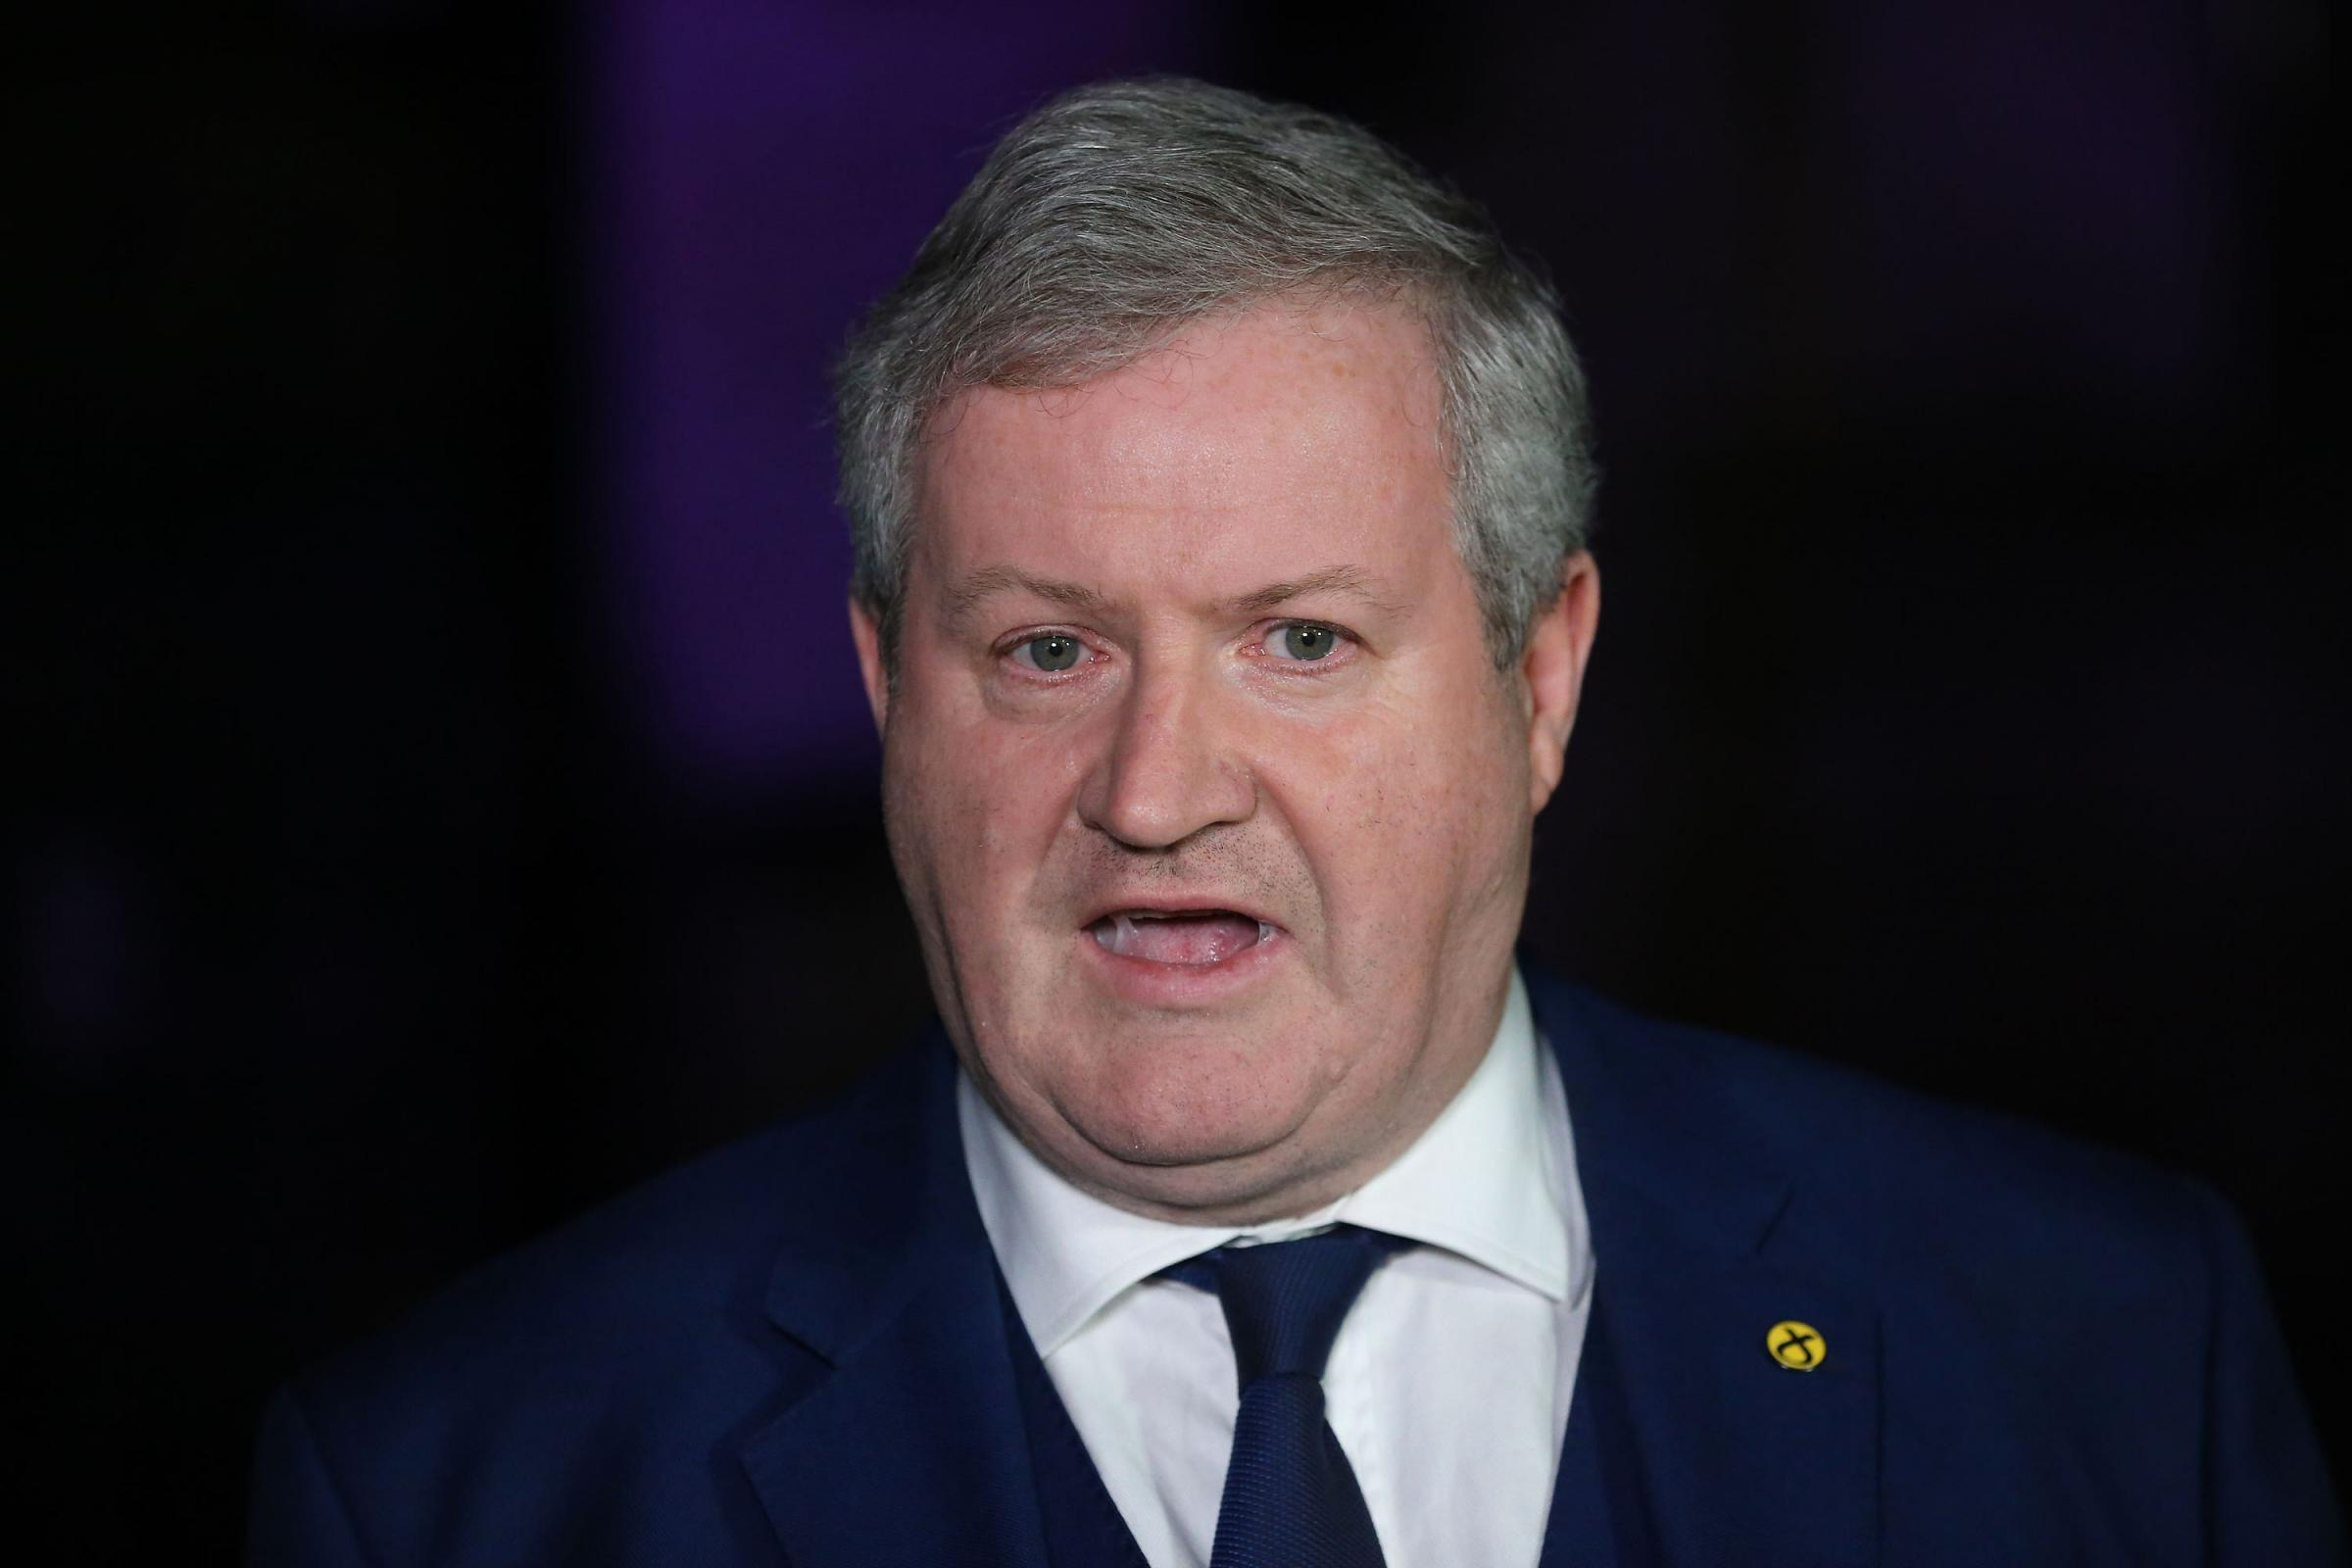 Ian Blackford: Johnson must 'respect the will' of Scots over Indyref2